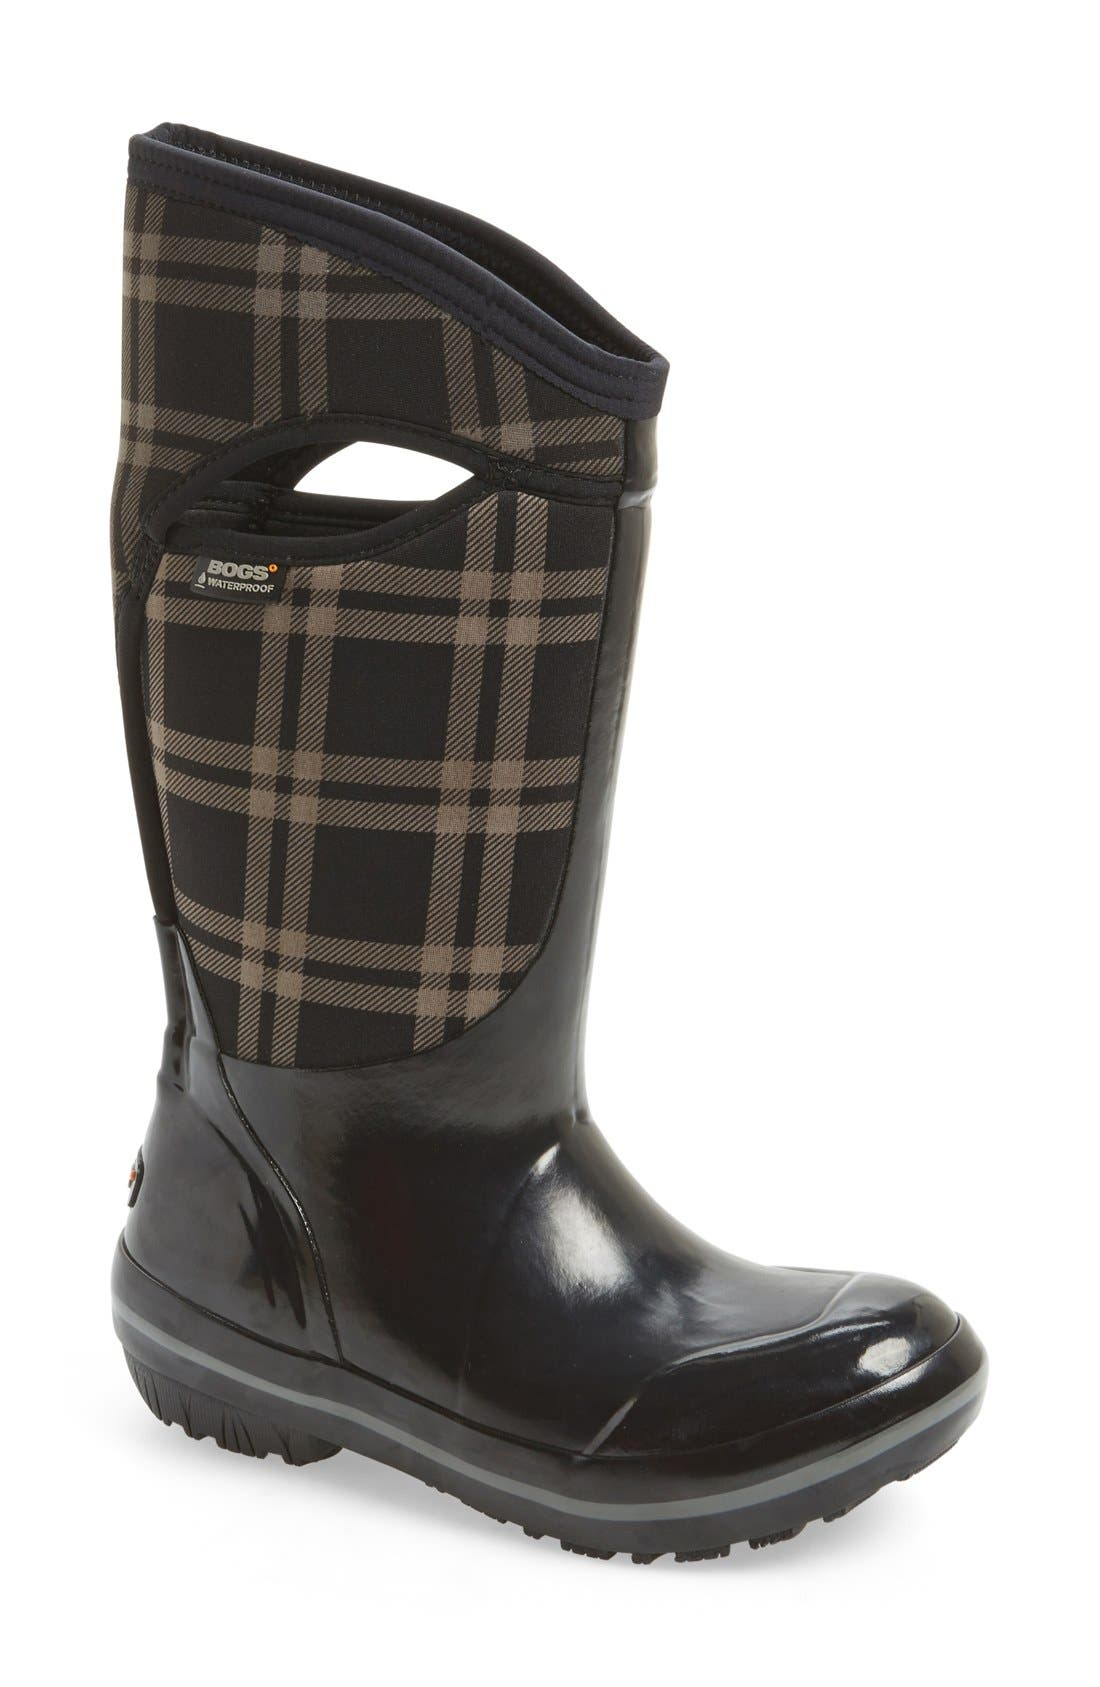 Alternate Image 1 Selected - Bogs 'Plimsoll' Waterproof Boot (Women)